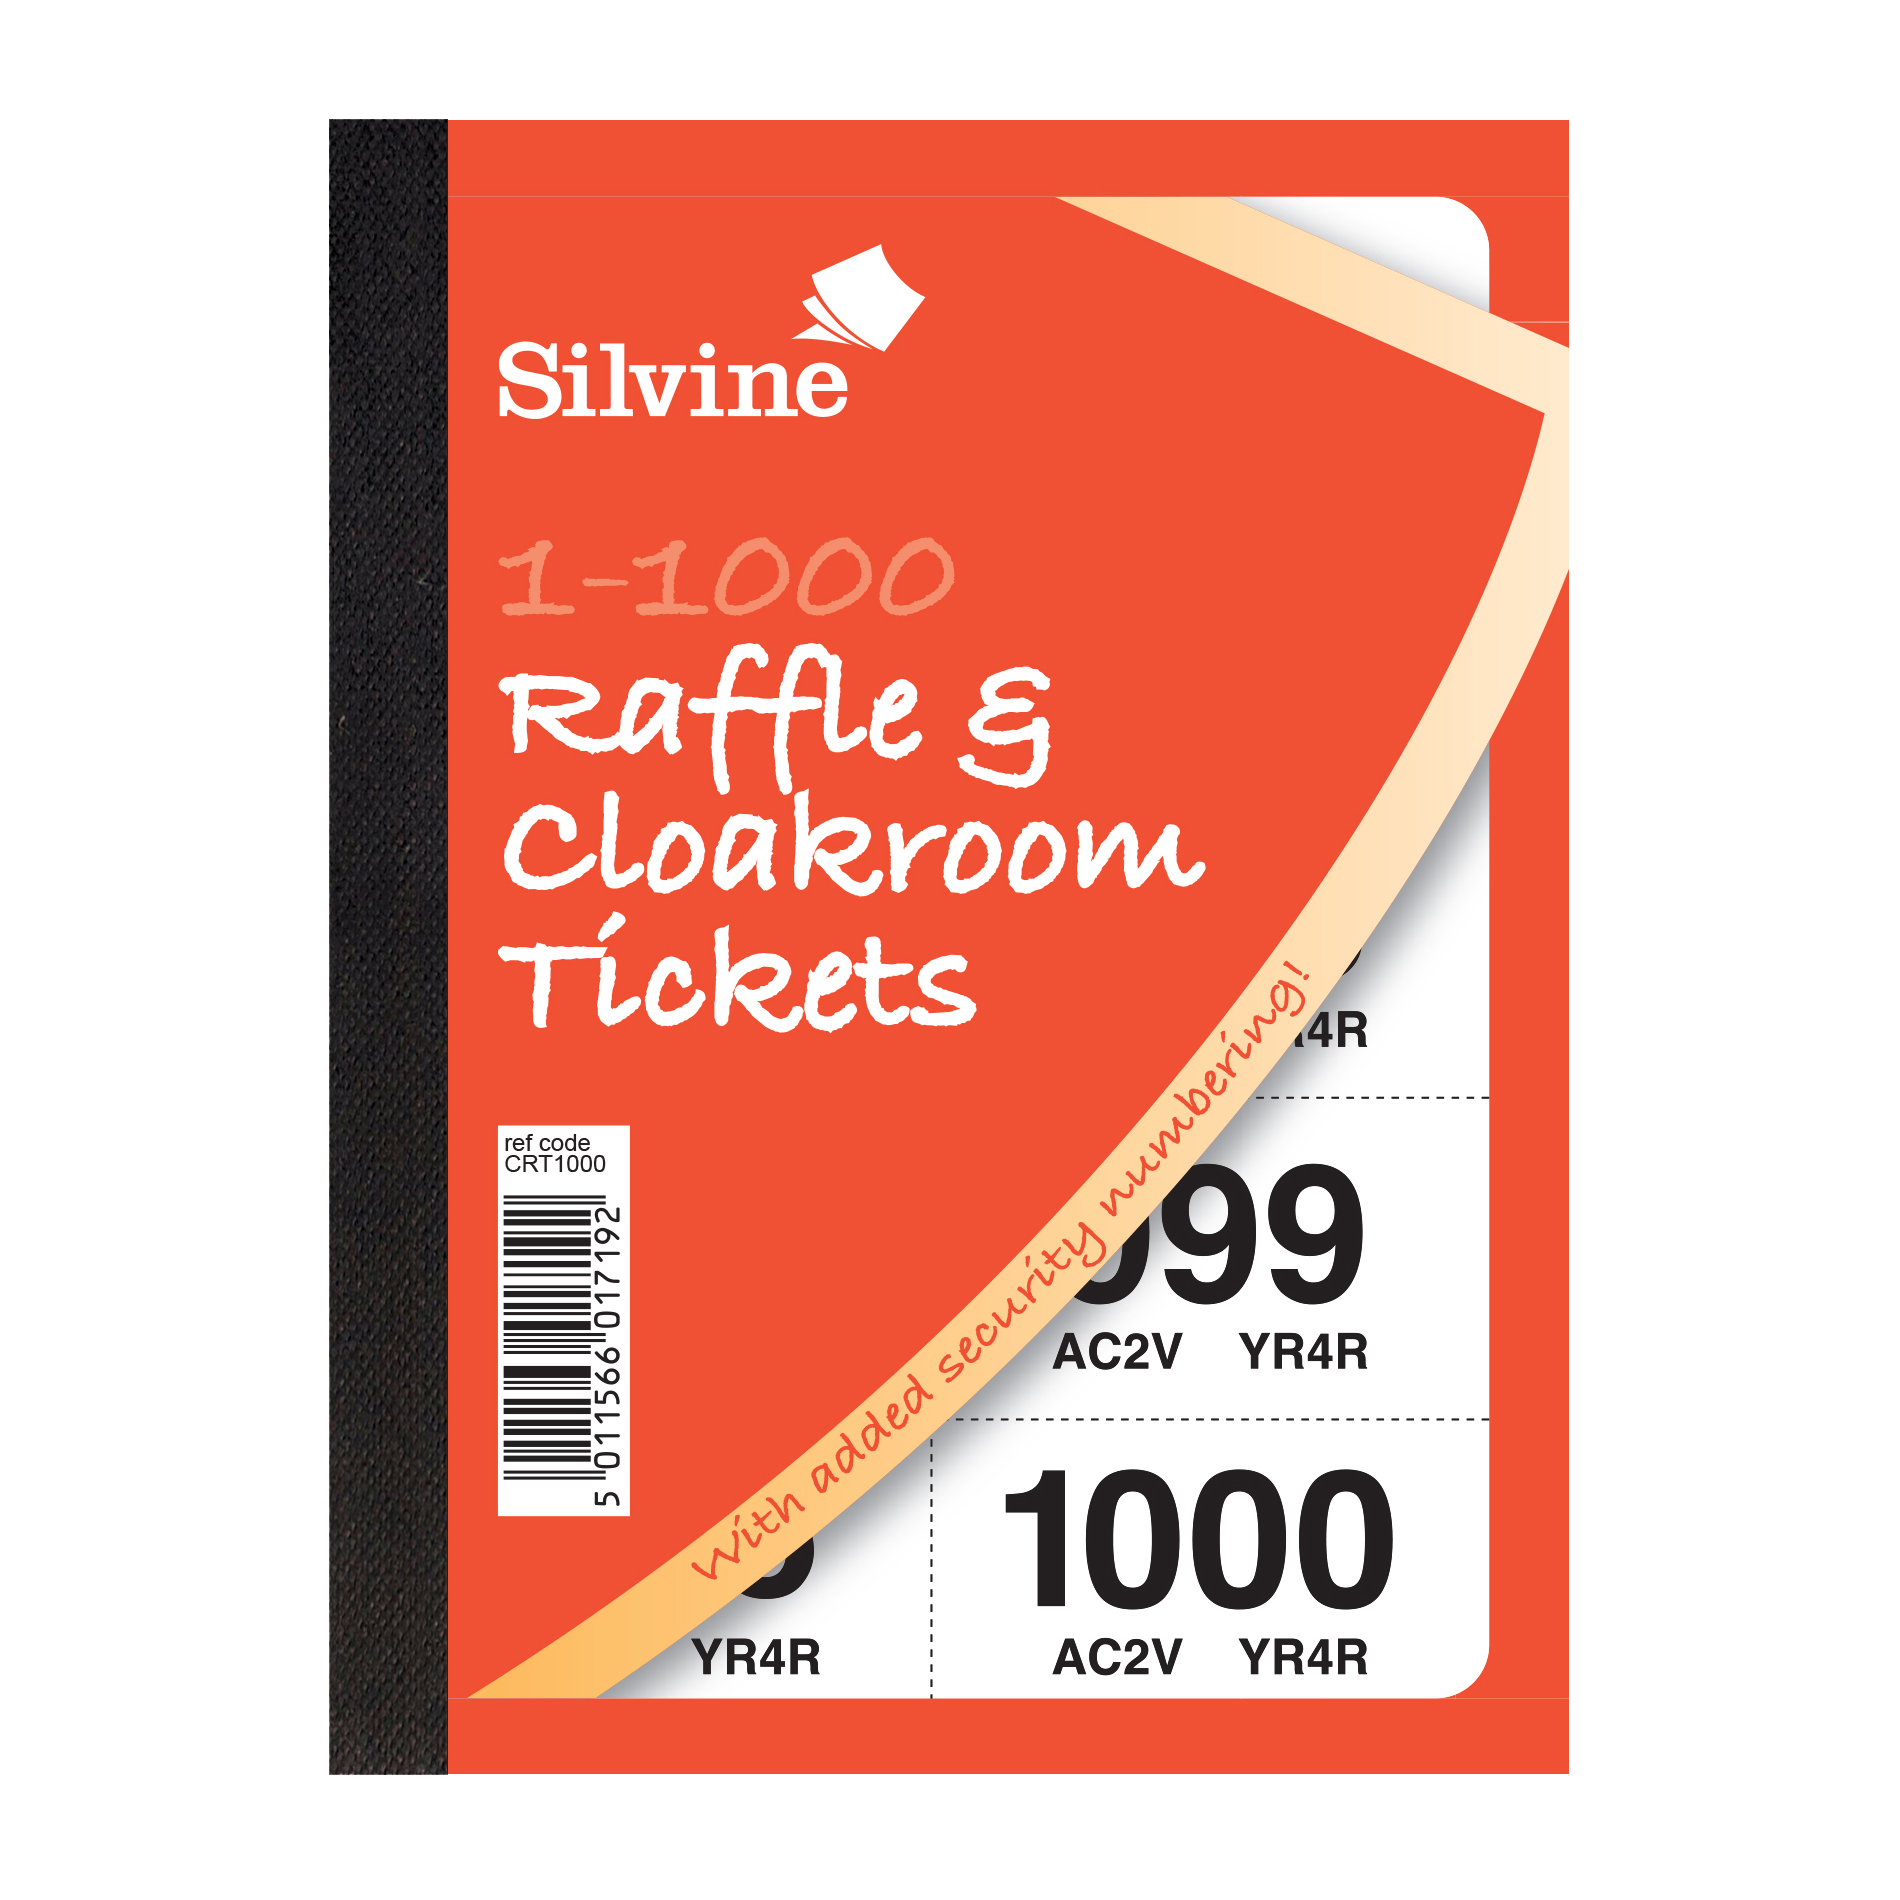 Cloakroom or Raffle Tickets Numbered 1-1000 Assorted Colours Pack 6